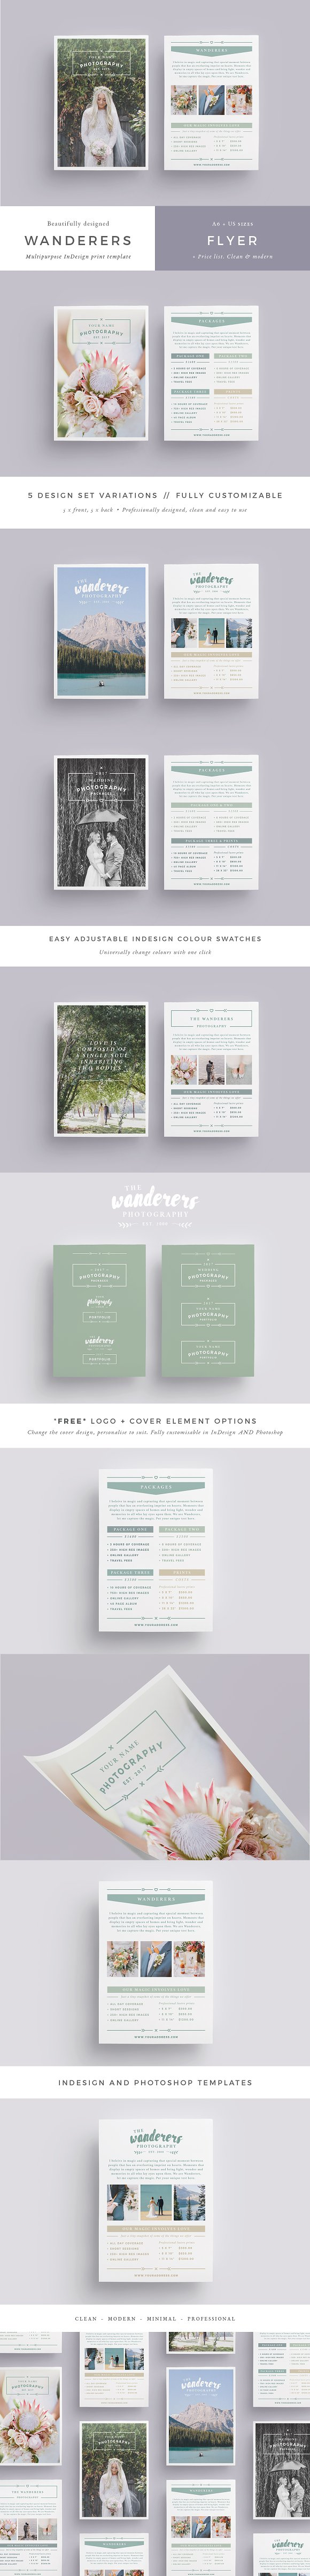 wanderers wedding flyer price list flyer templates creative market